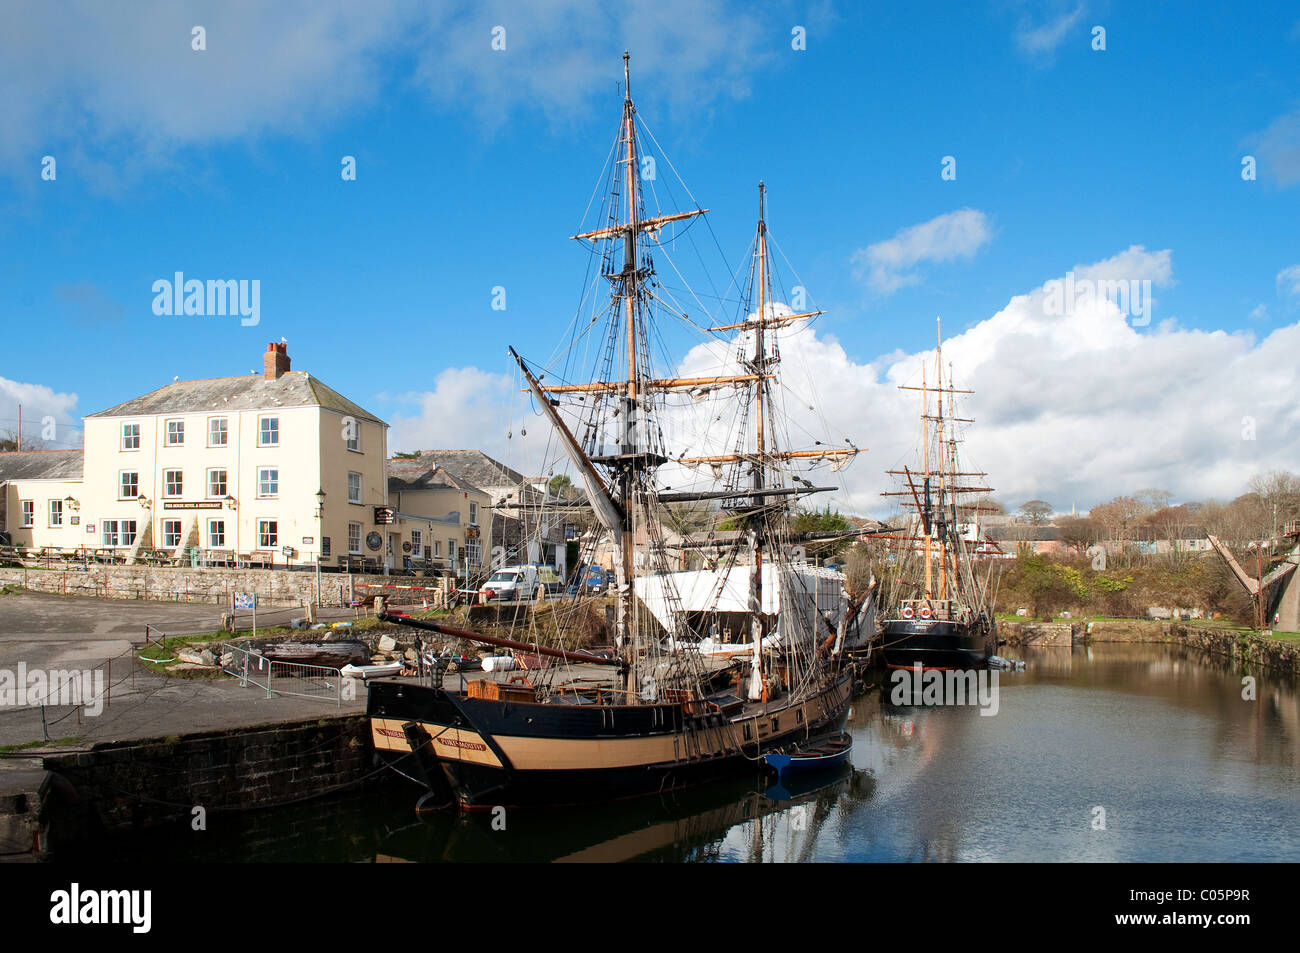 Tall ships in the harbour at Charlestown, Cornwall, UK - Stock Image